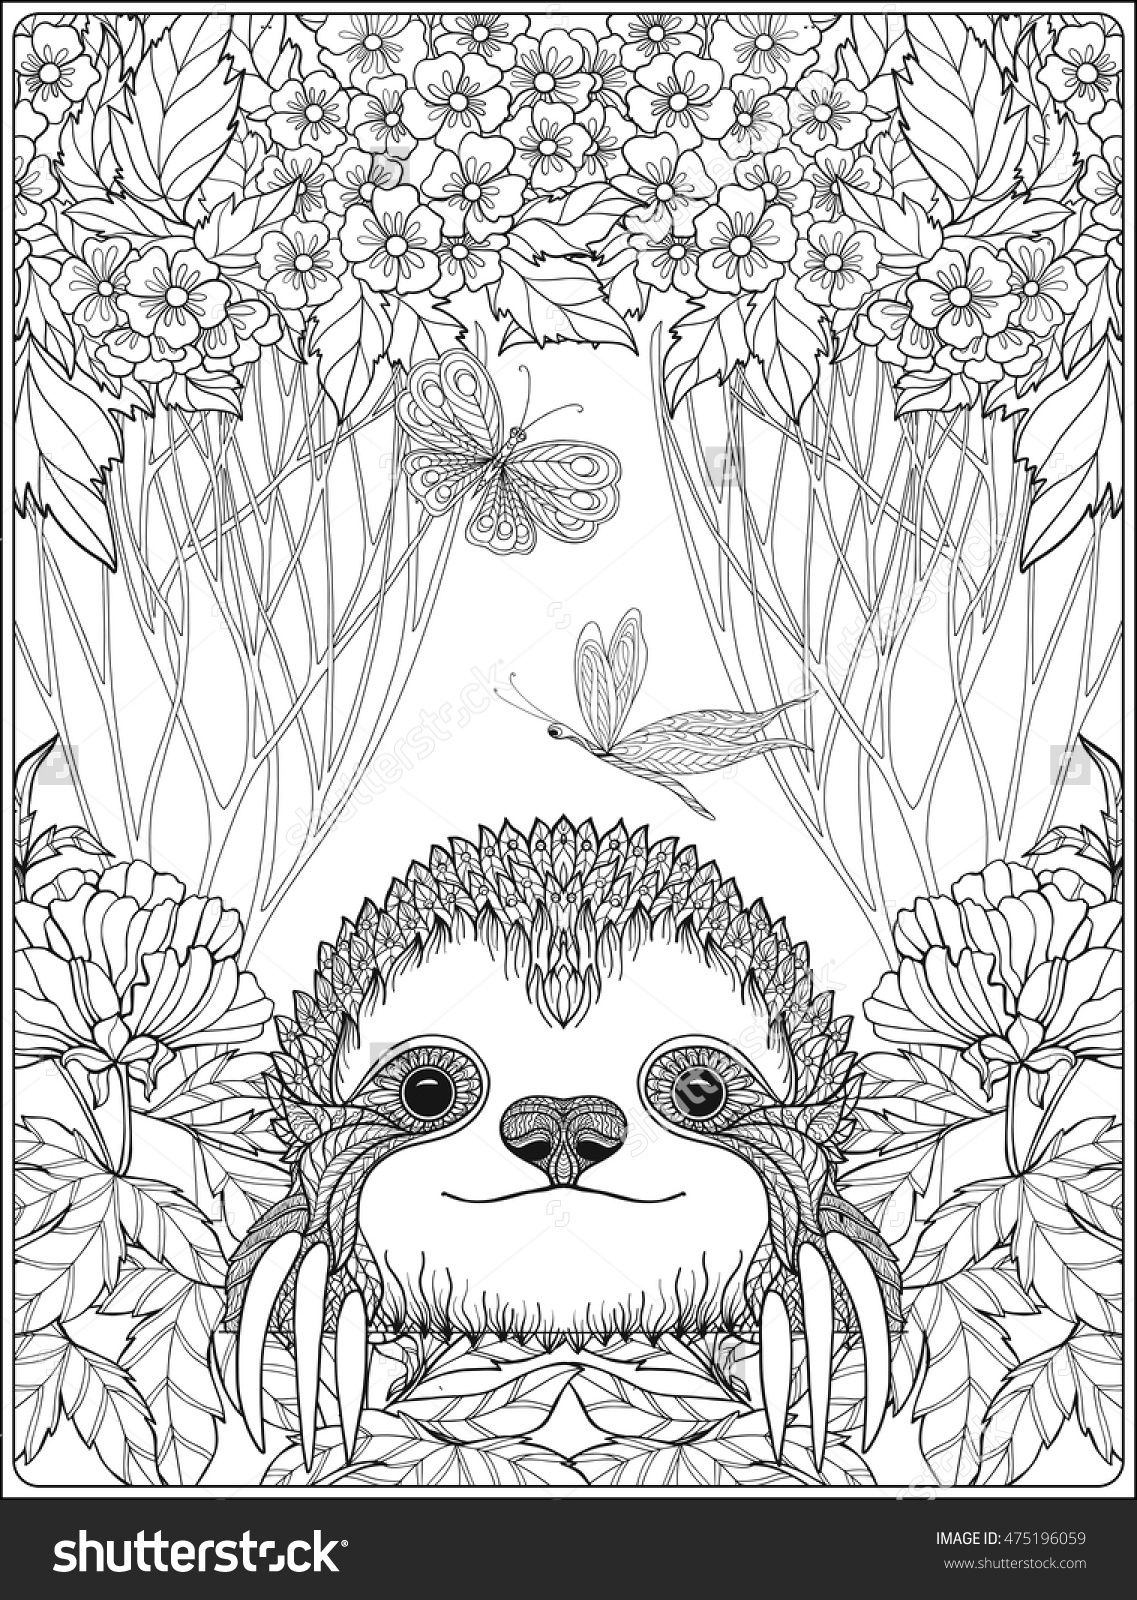 Sloth Coloring Page Cute Sloth In Forest Coloring Page For Adults  Shutterstock